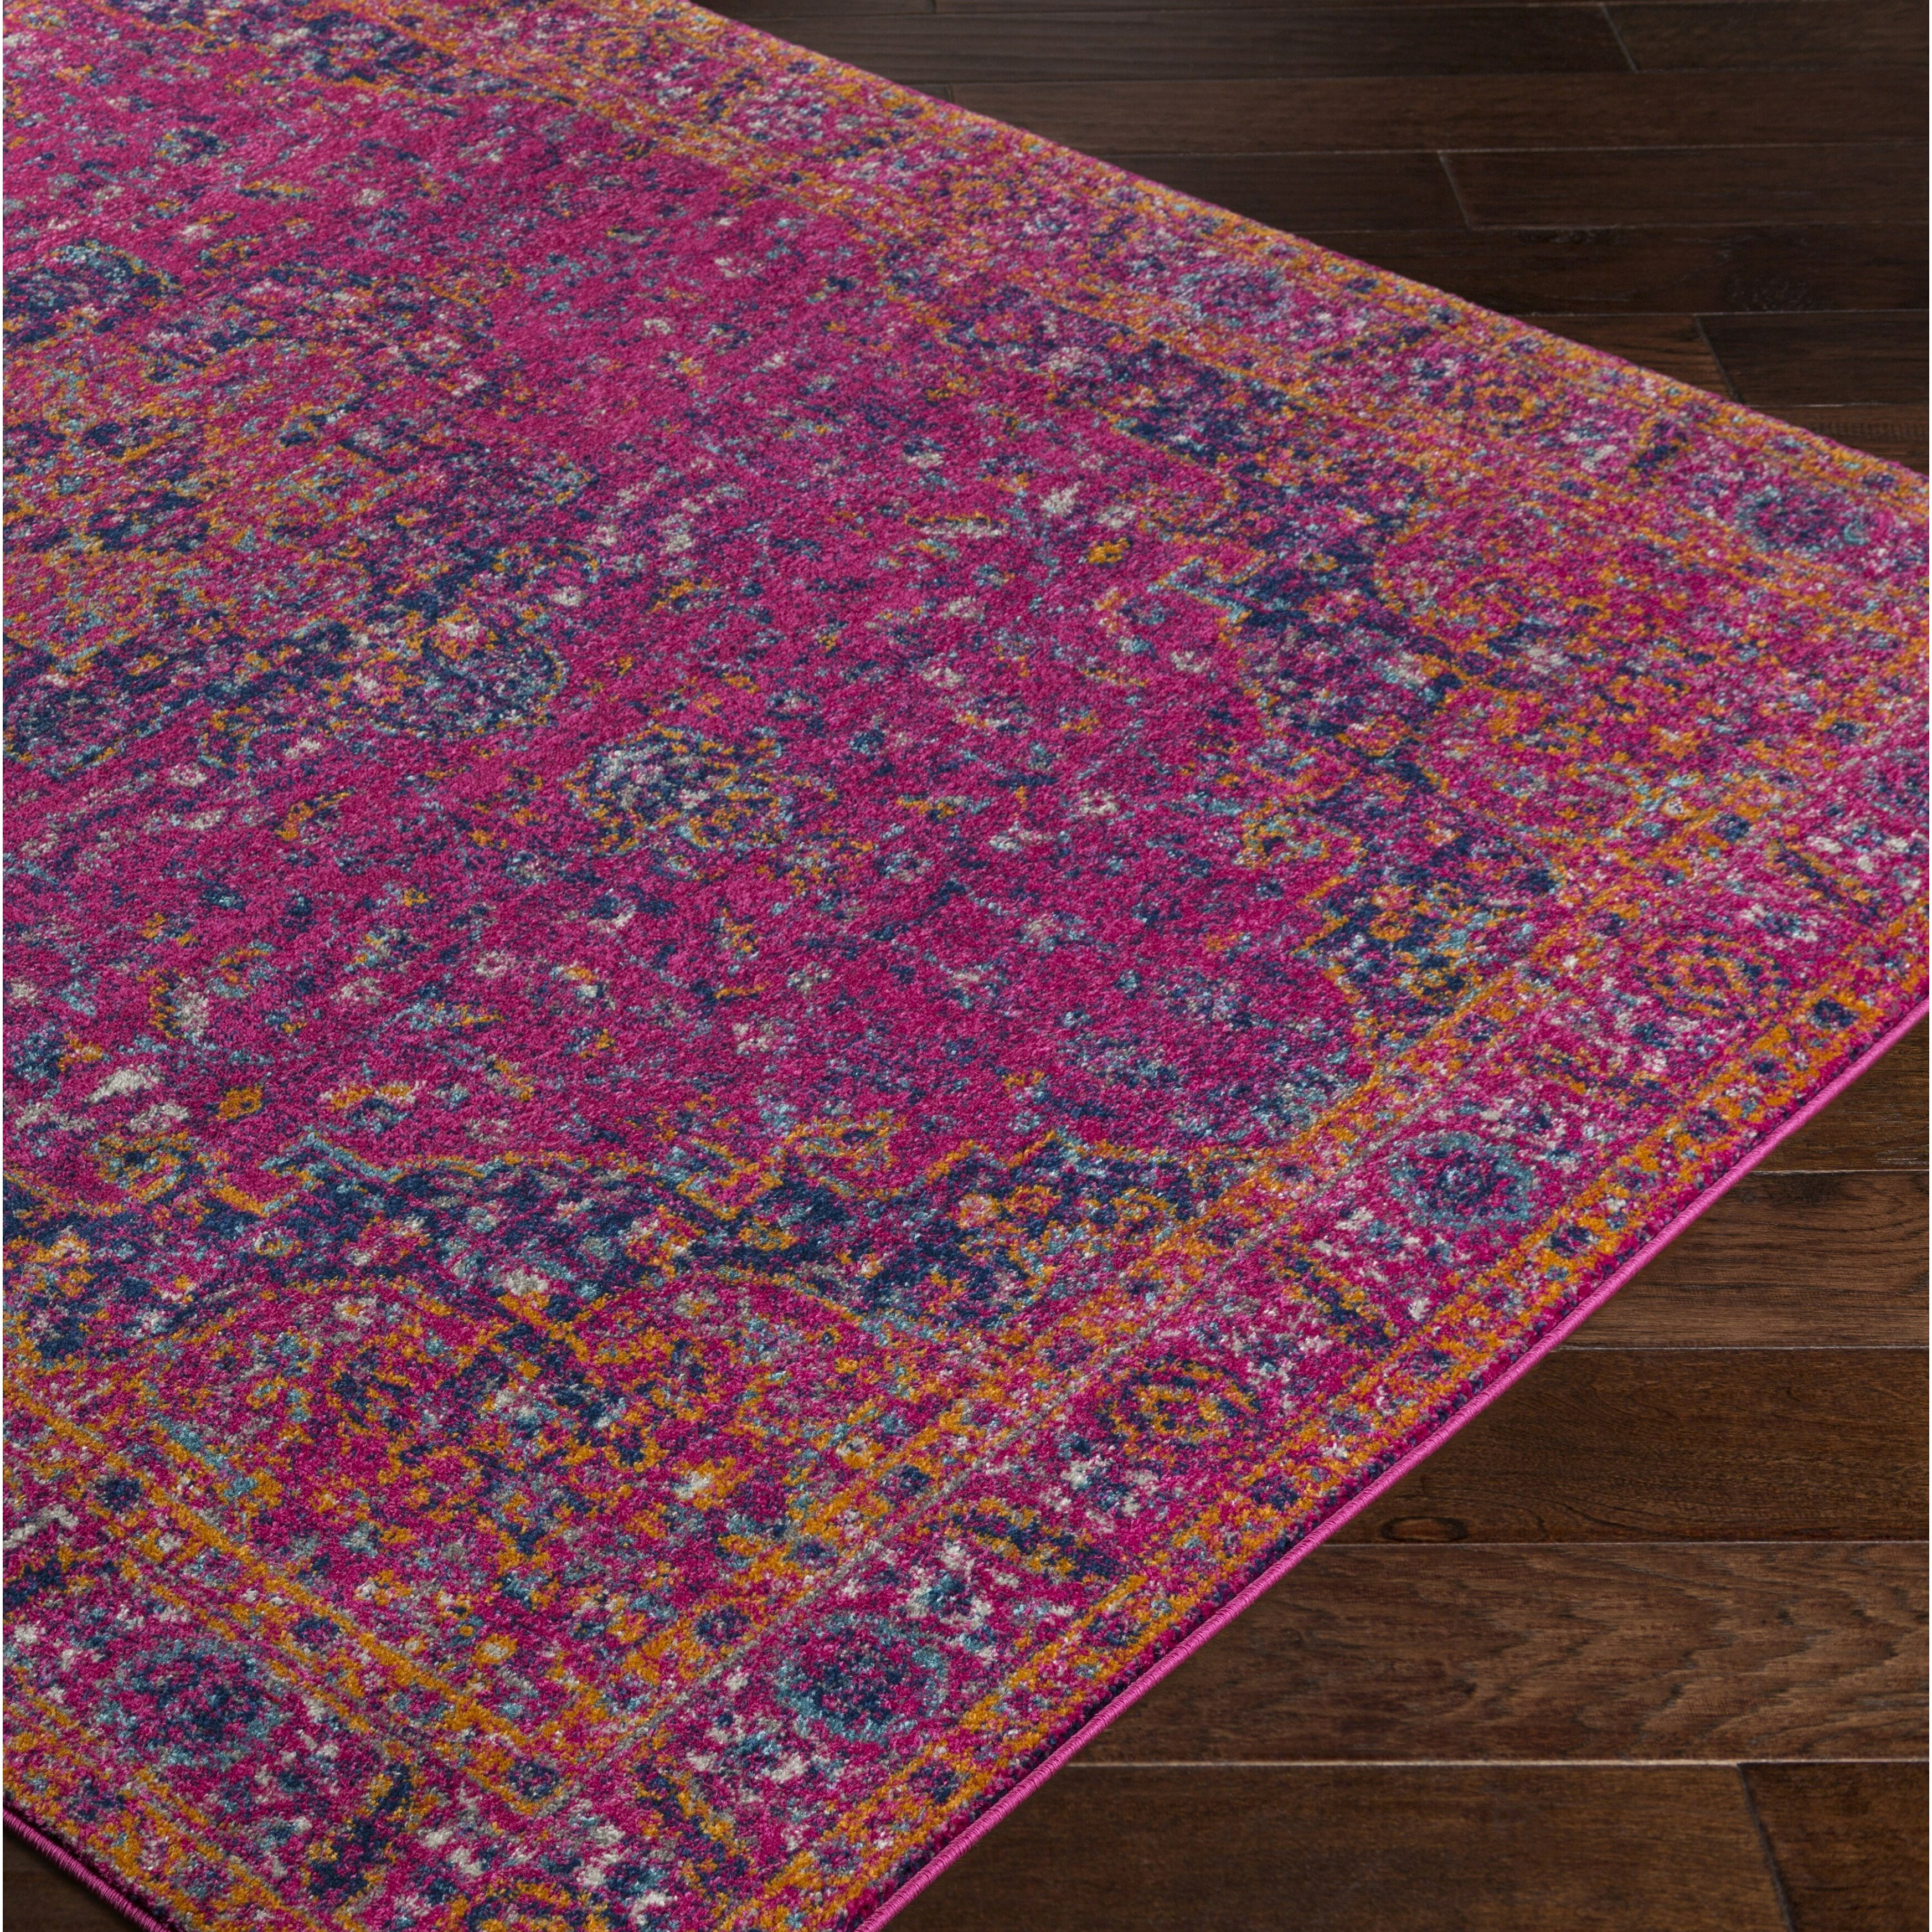 Purple And Lavender Rug: Bungalow Rose Andover Pink/Purple Area Rug & Reviews